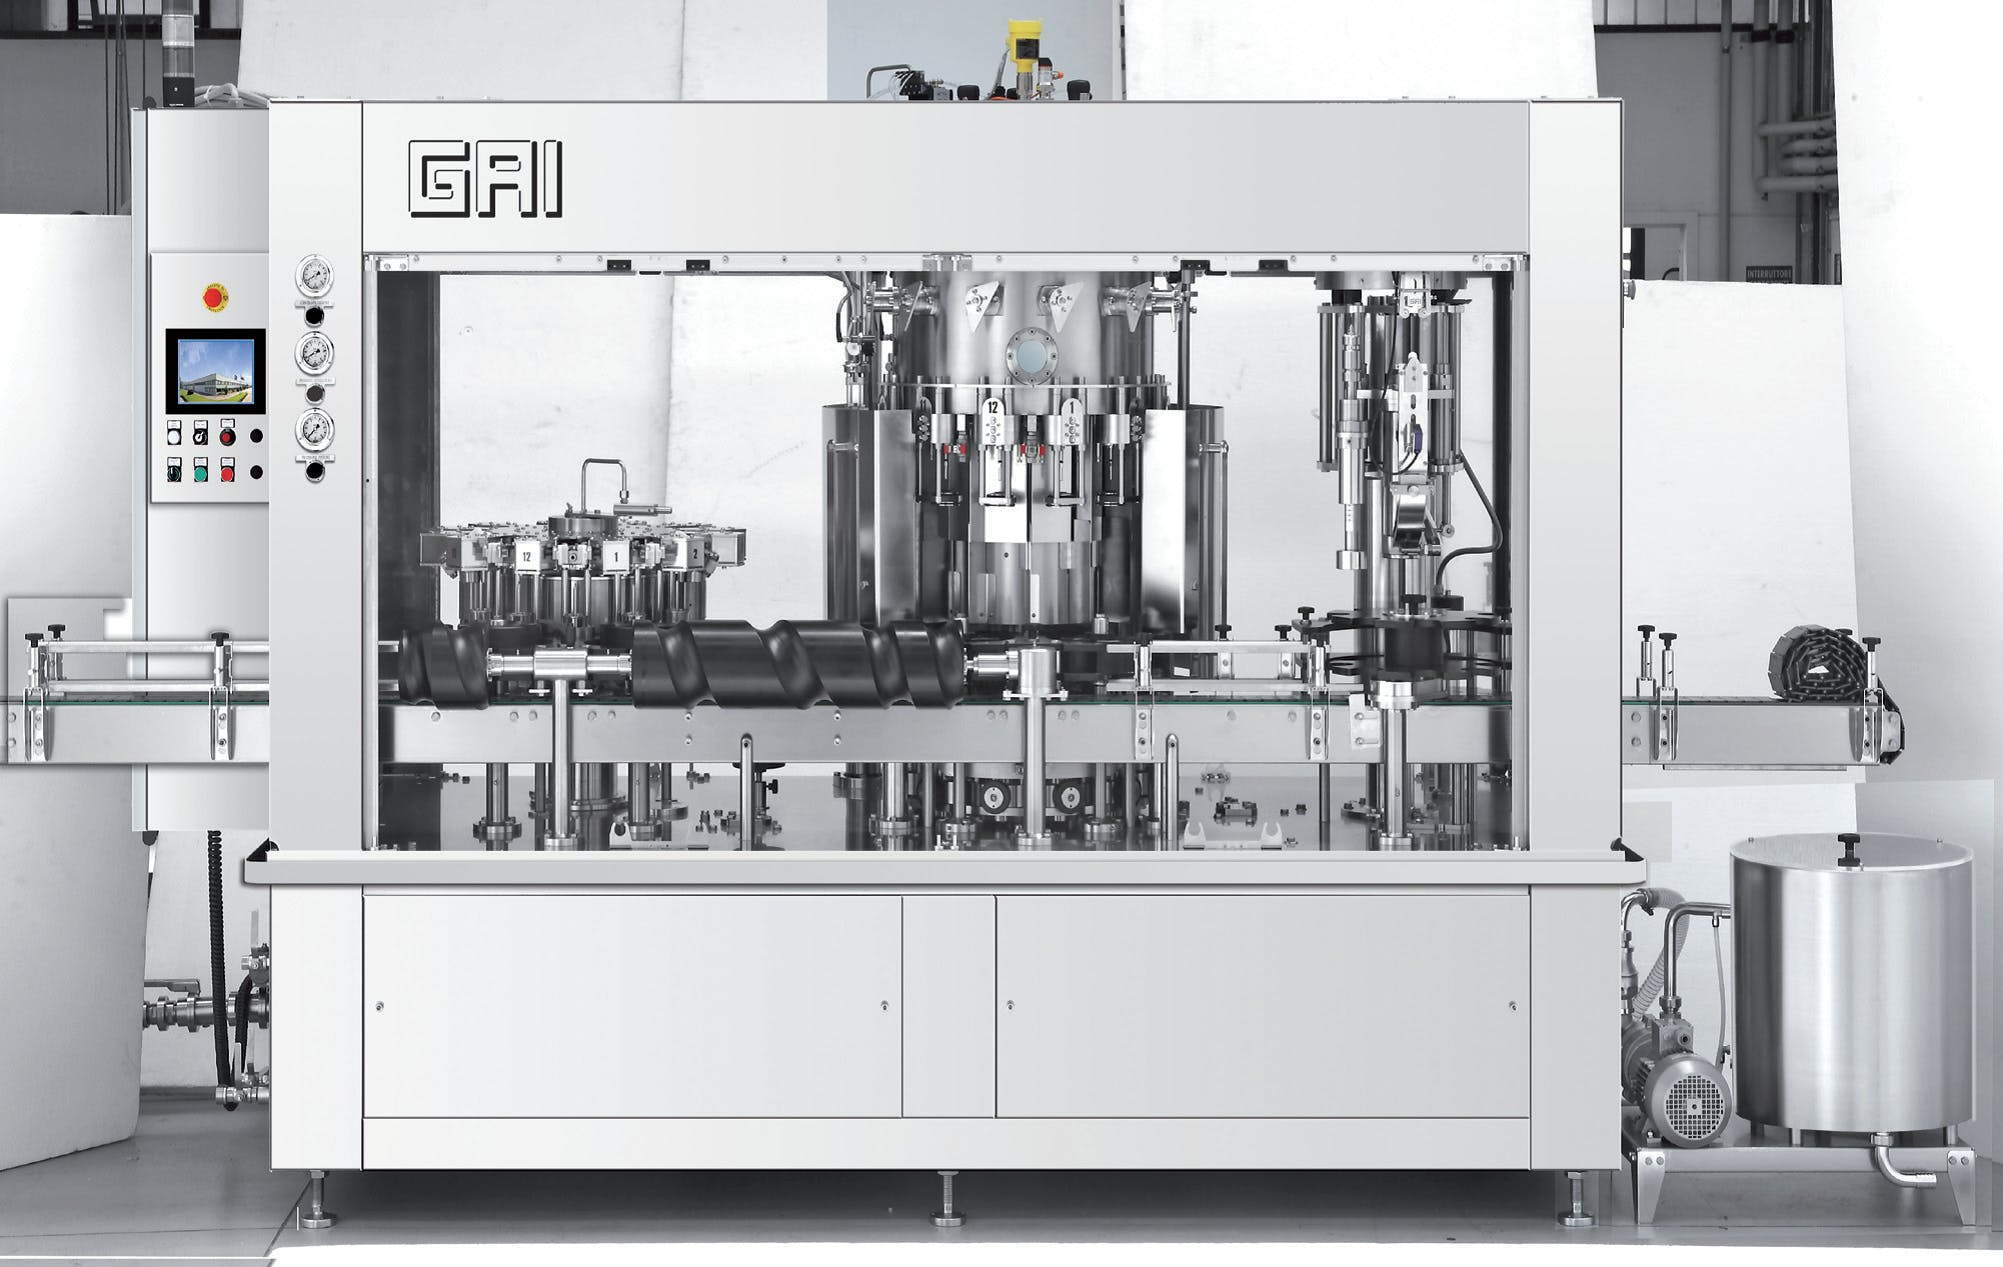 GAI 3003A BIER Bottling machinery sold by Prospero Equipment Corp.